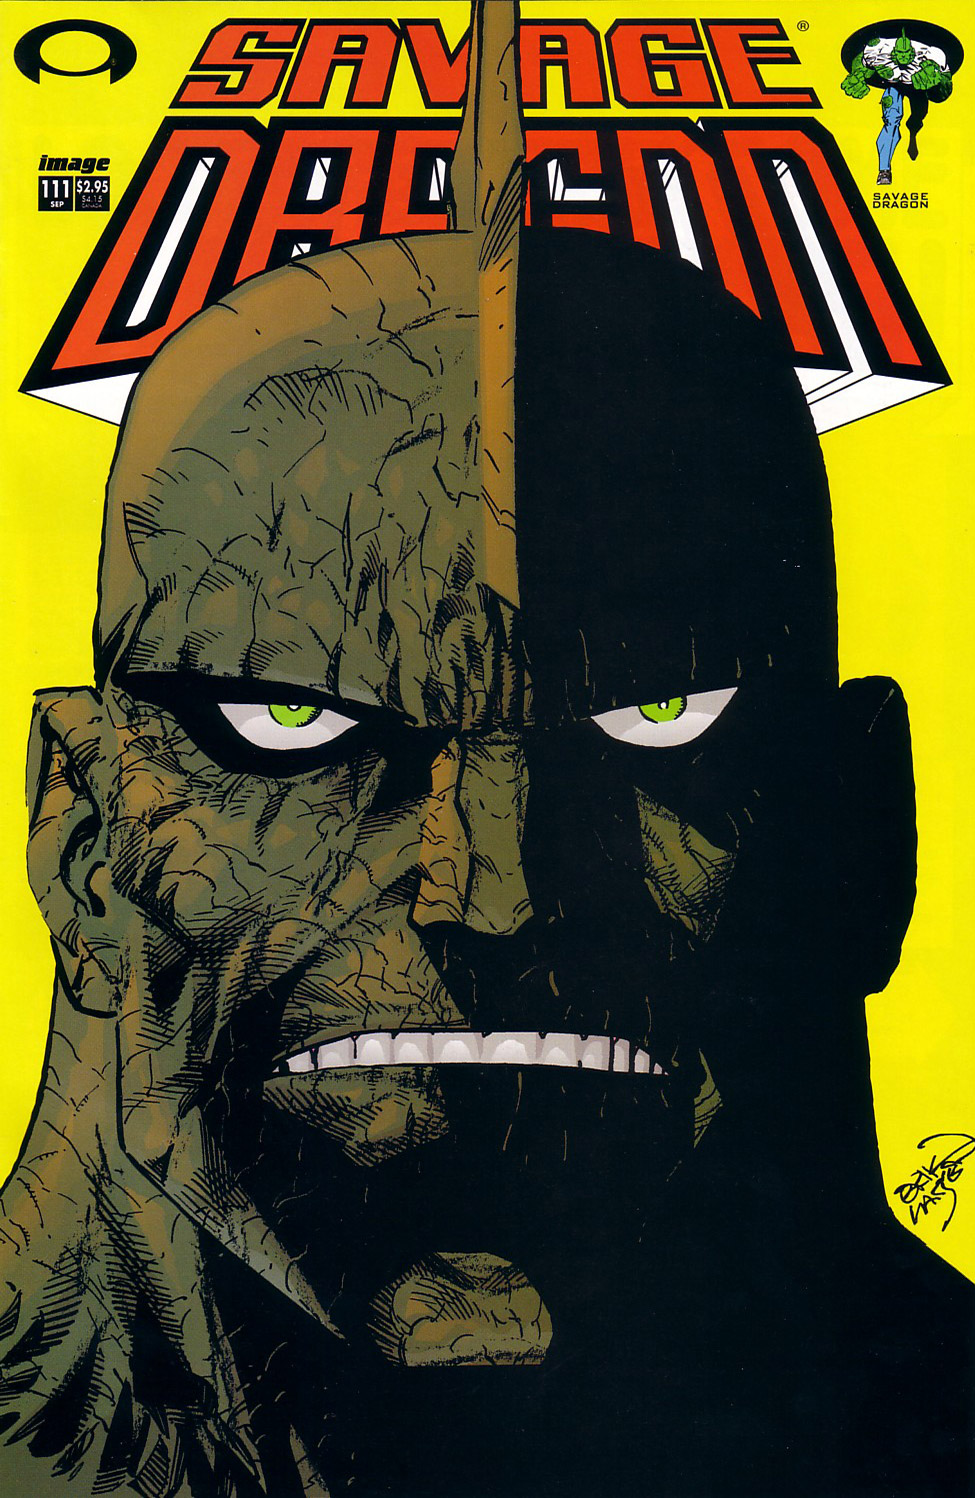 Cover Savage Dragon Vol.2 #111